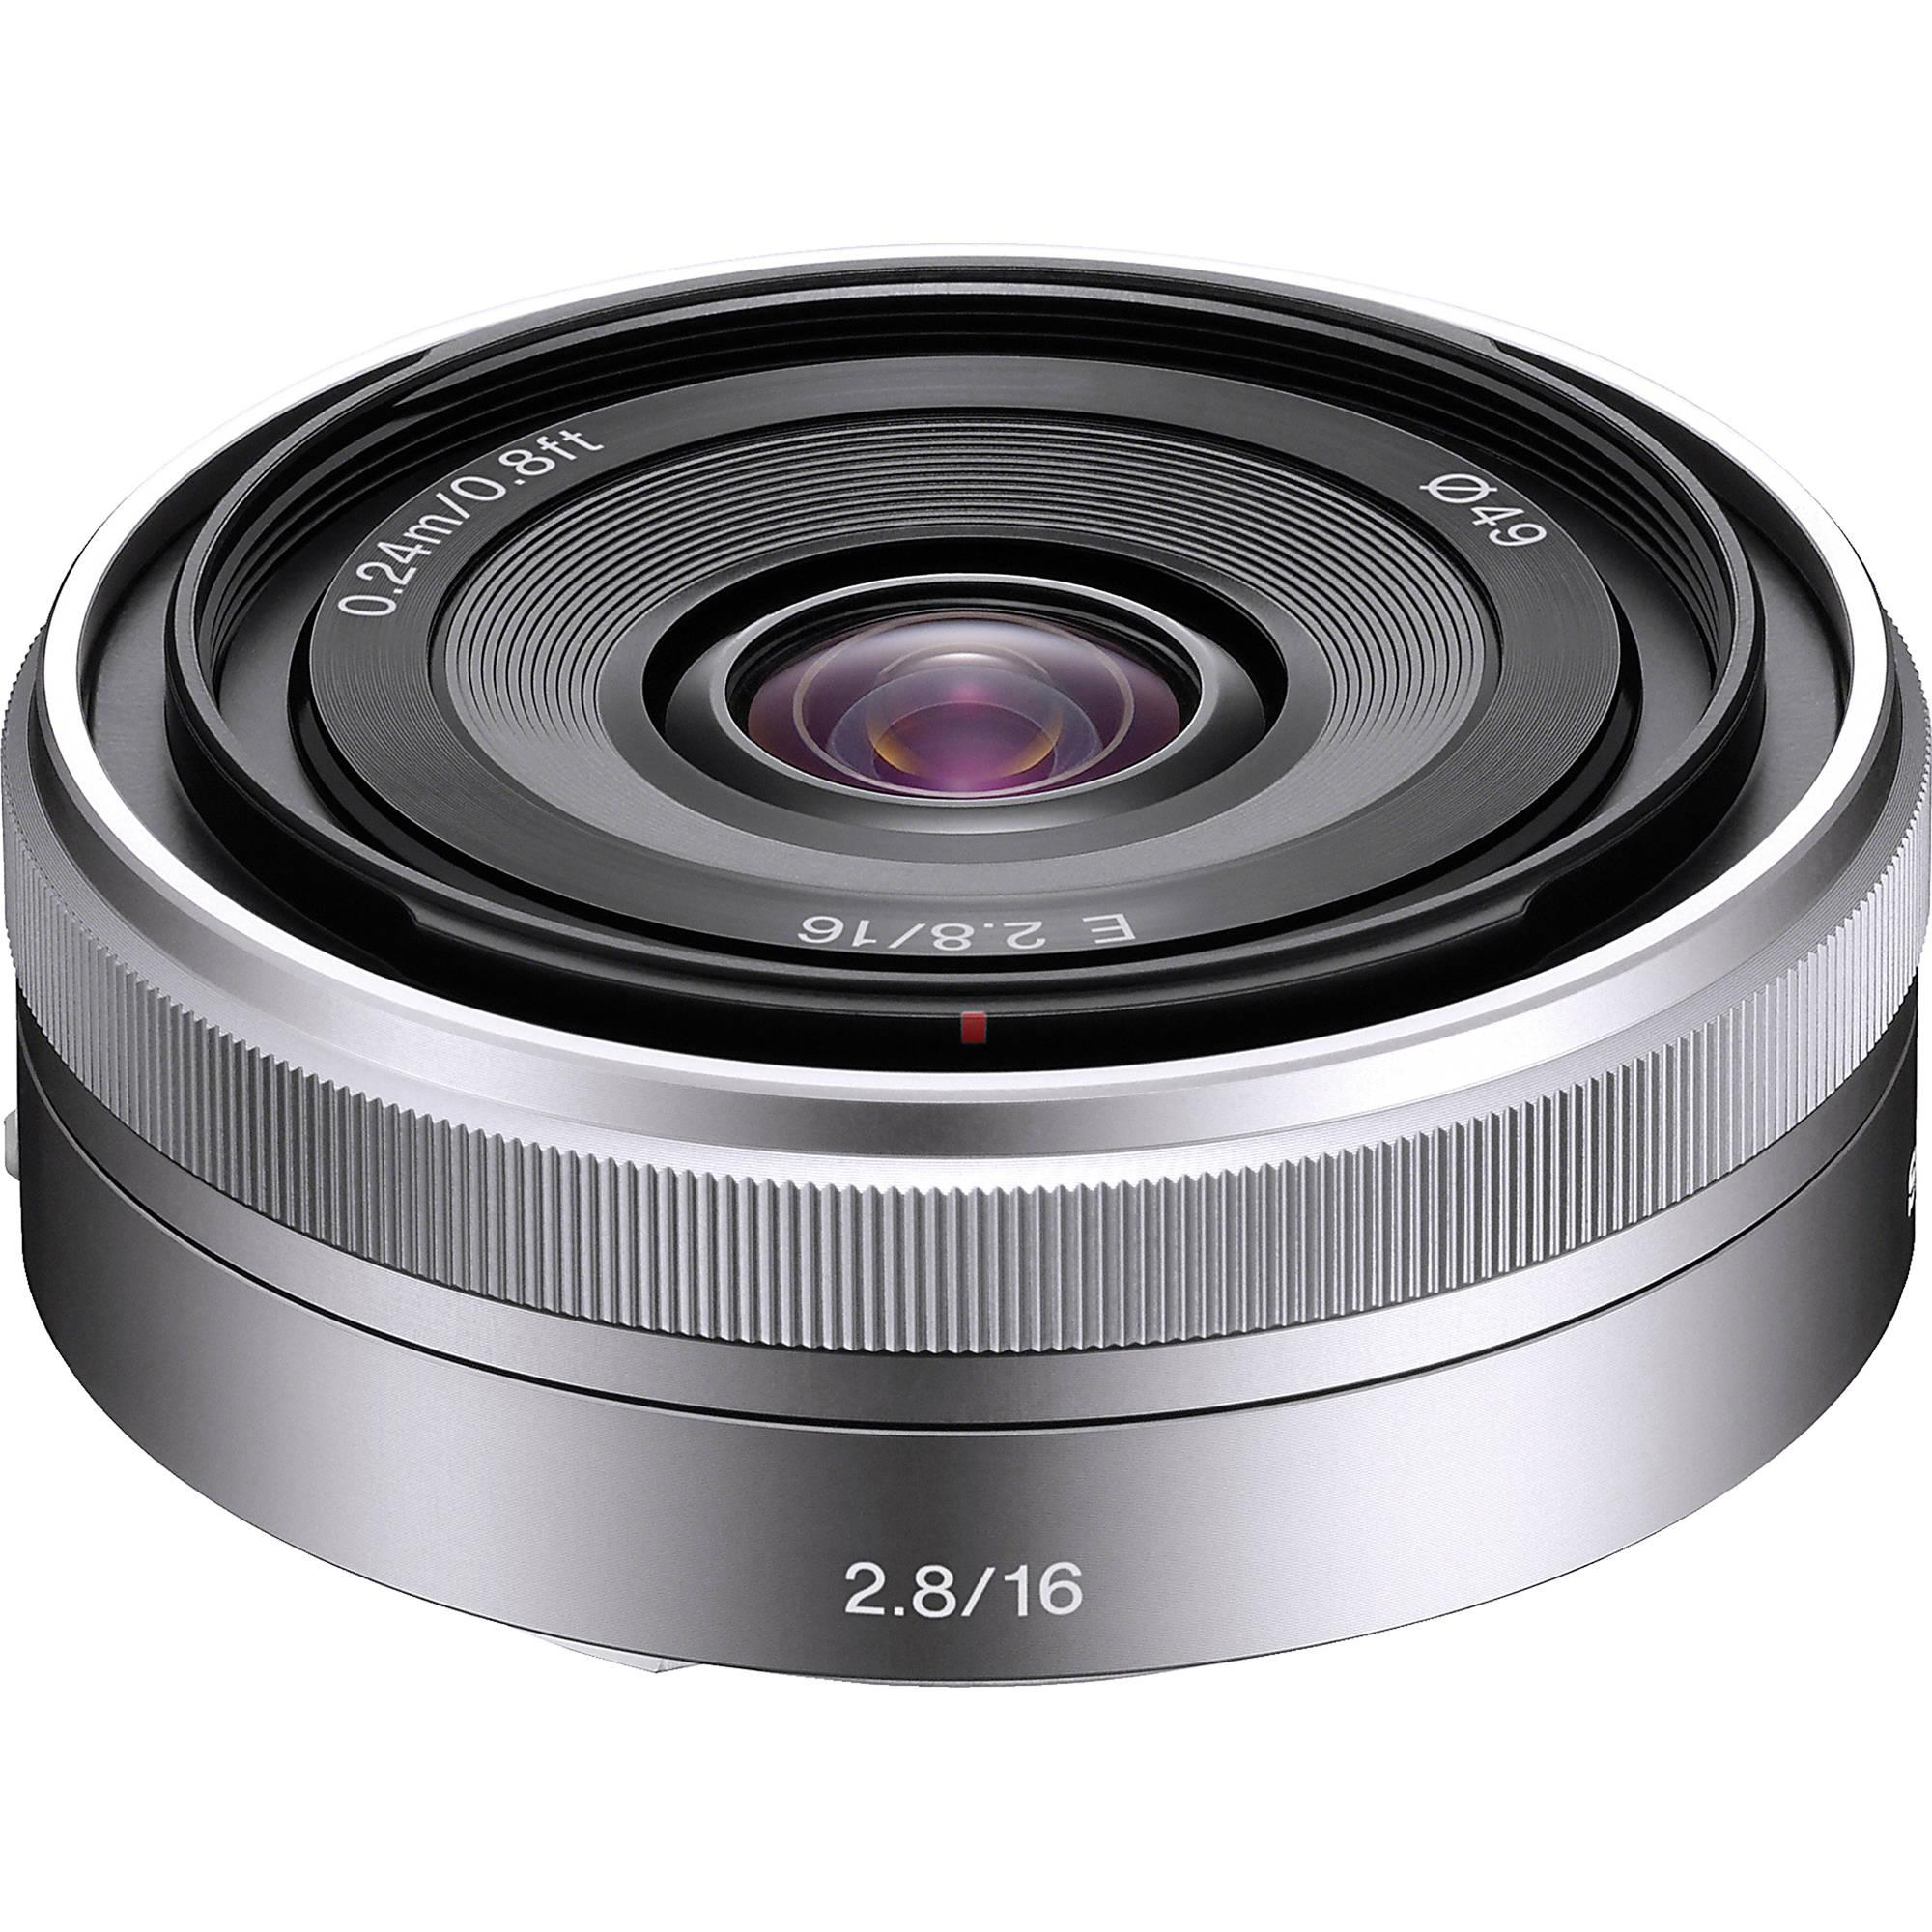 Sony Lenses Philippines Camera Lens For Sale Prices Sel55f18z Fe 55mm F18 Za Sonnar T Sel 55 E 16 Mm F28 Sel16f28